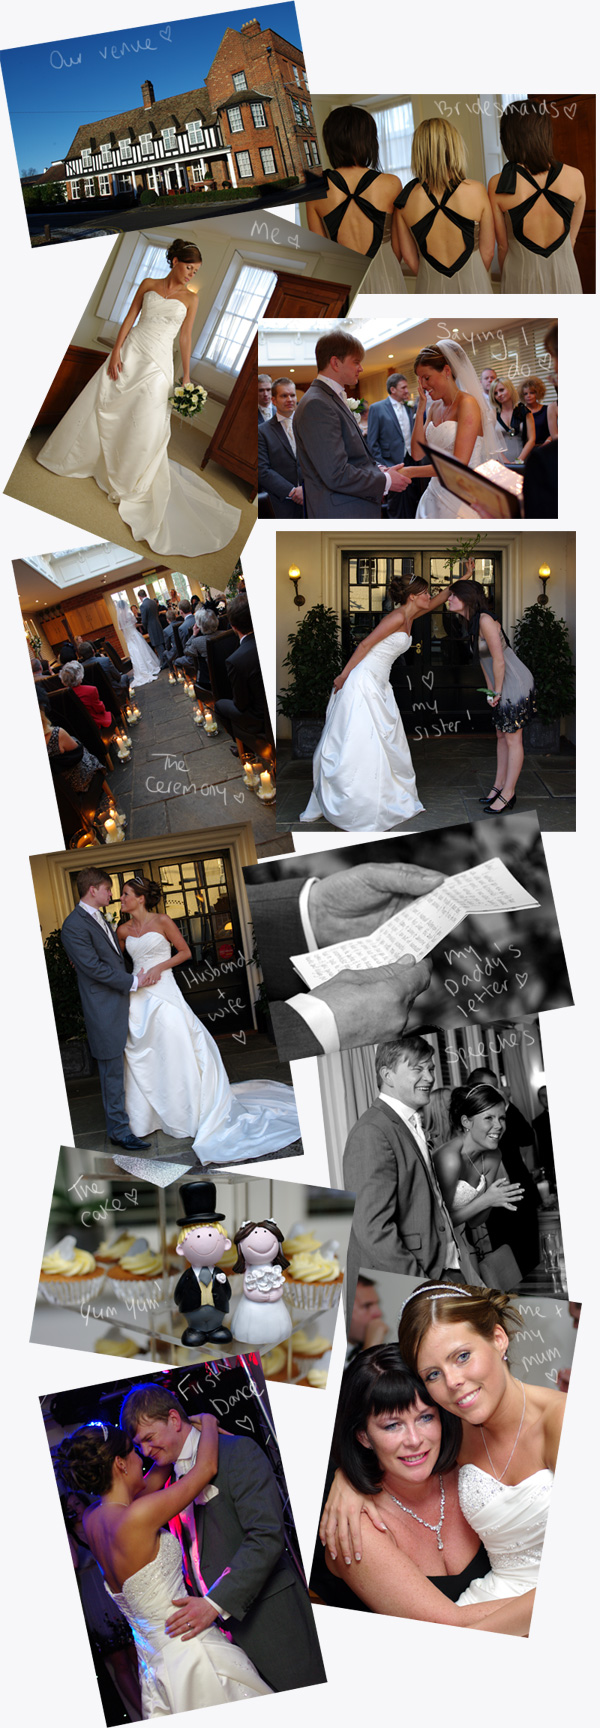 ourweddingdaycollage